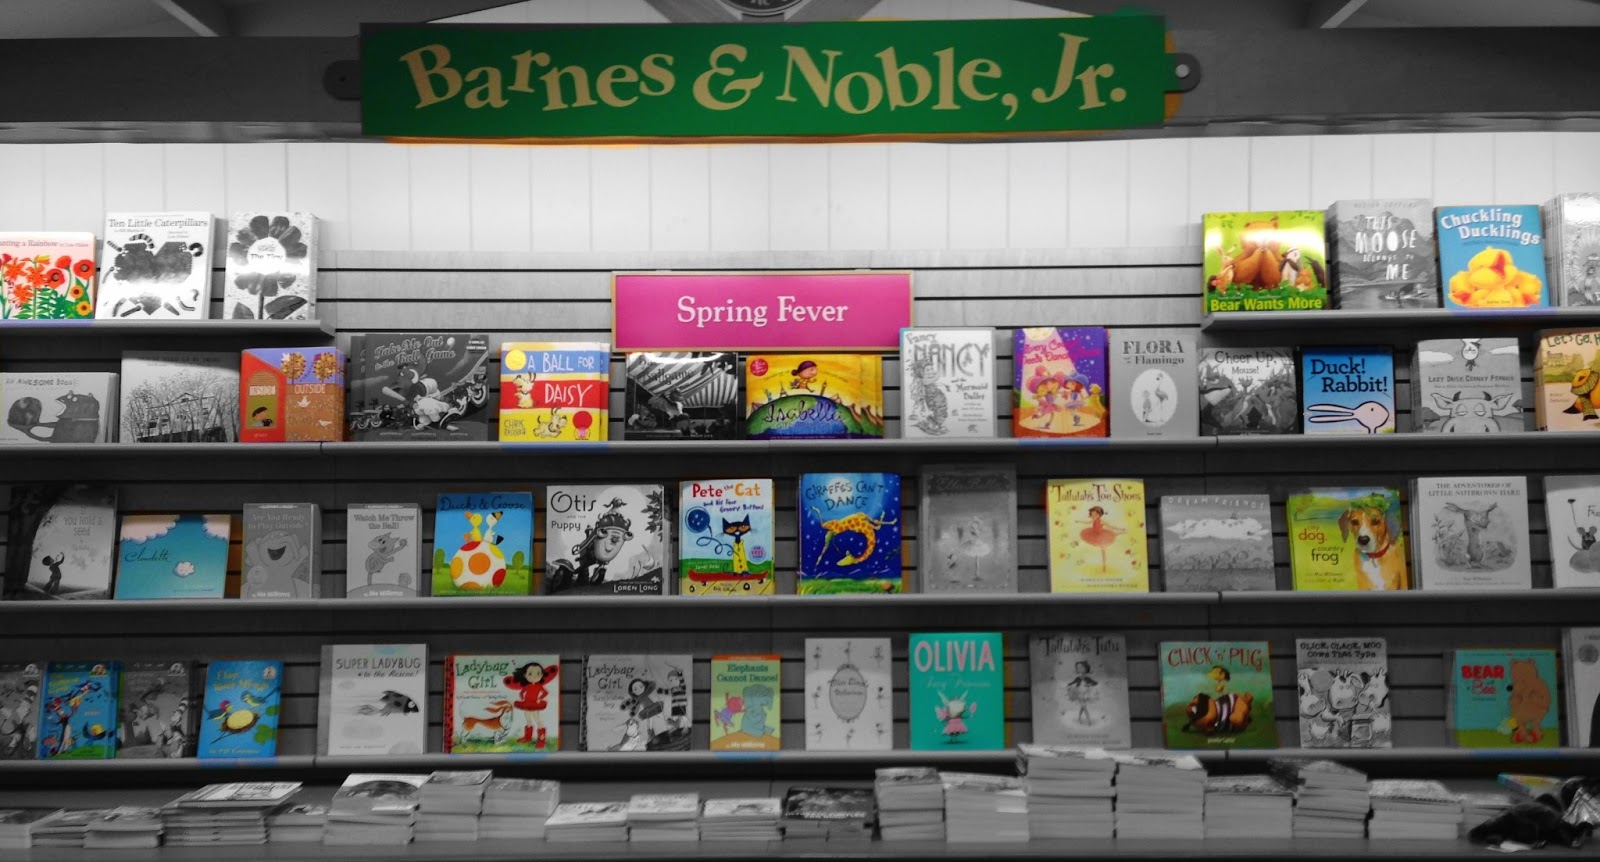 biz by noble chicago sell barns and ct story books publisher personalized business to kids naperville barnes tribune